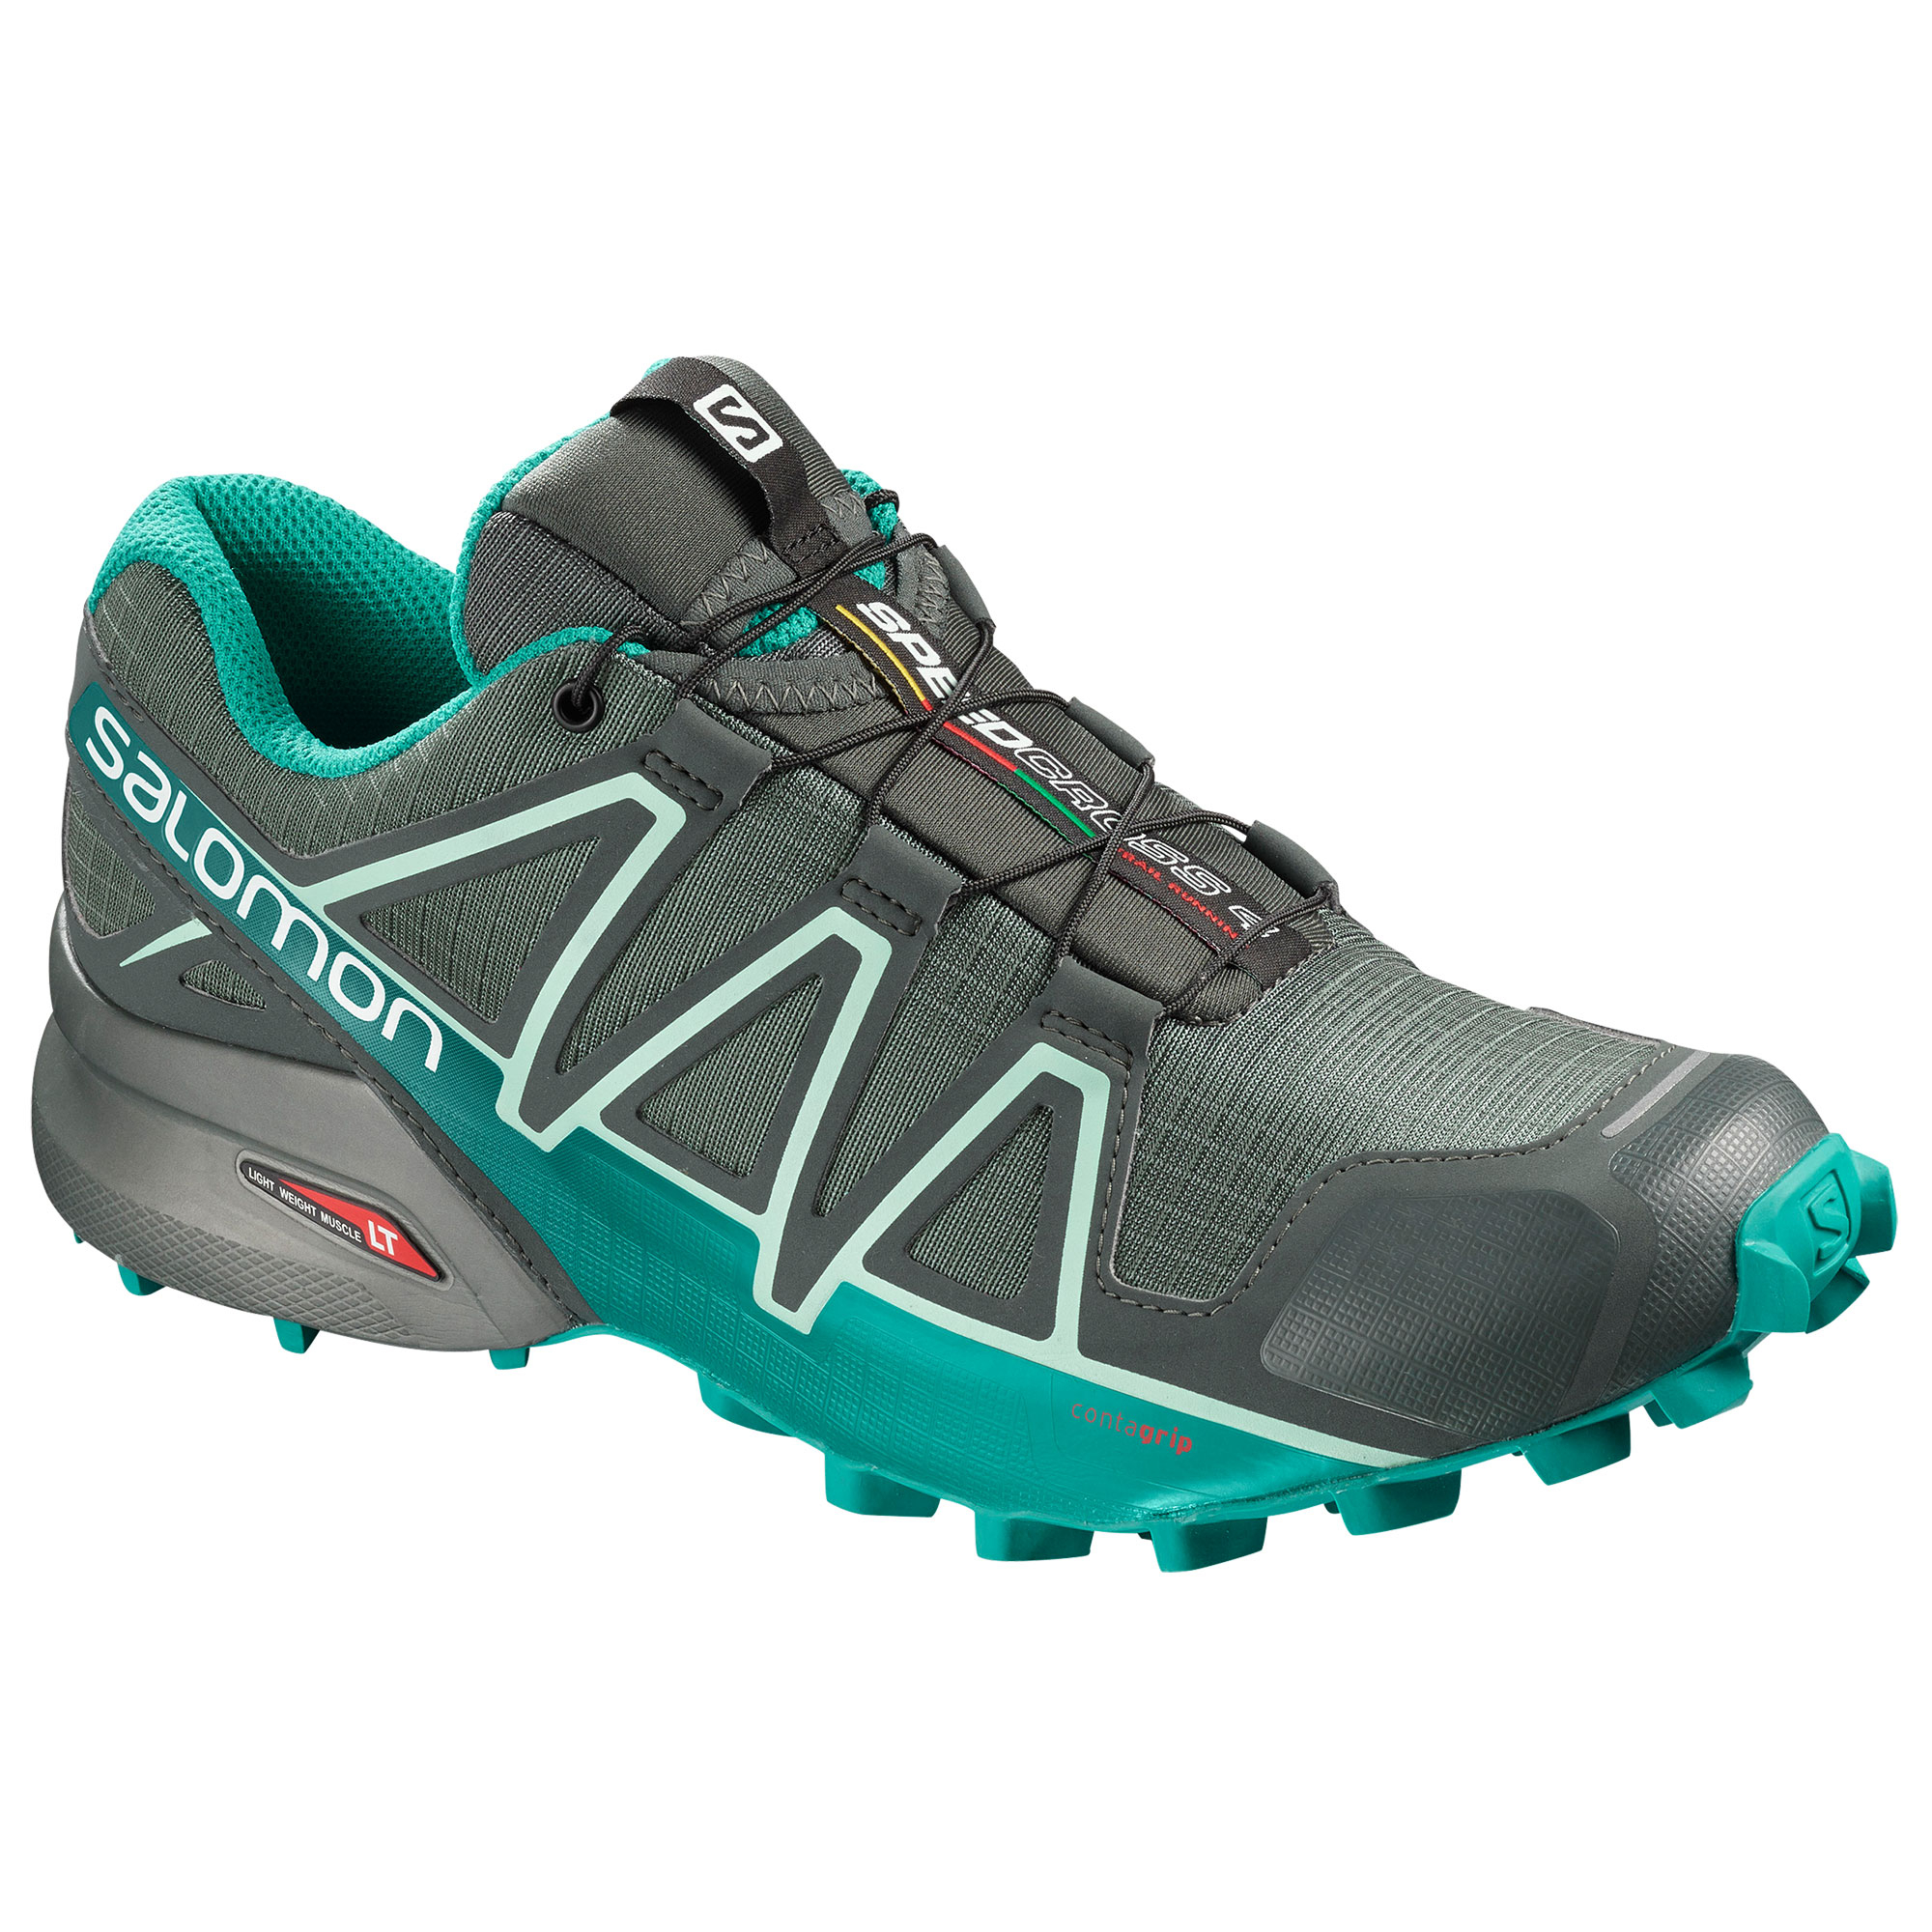 Scarpa donna SALOMON SPEEDCROSS 4 GTX grigio